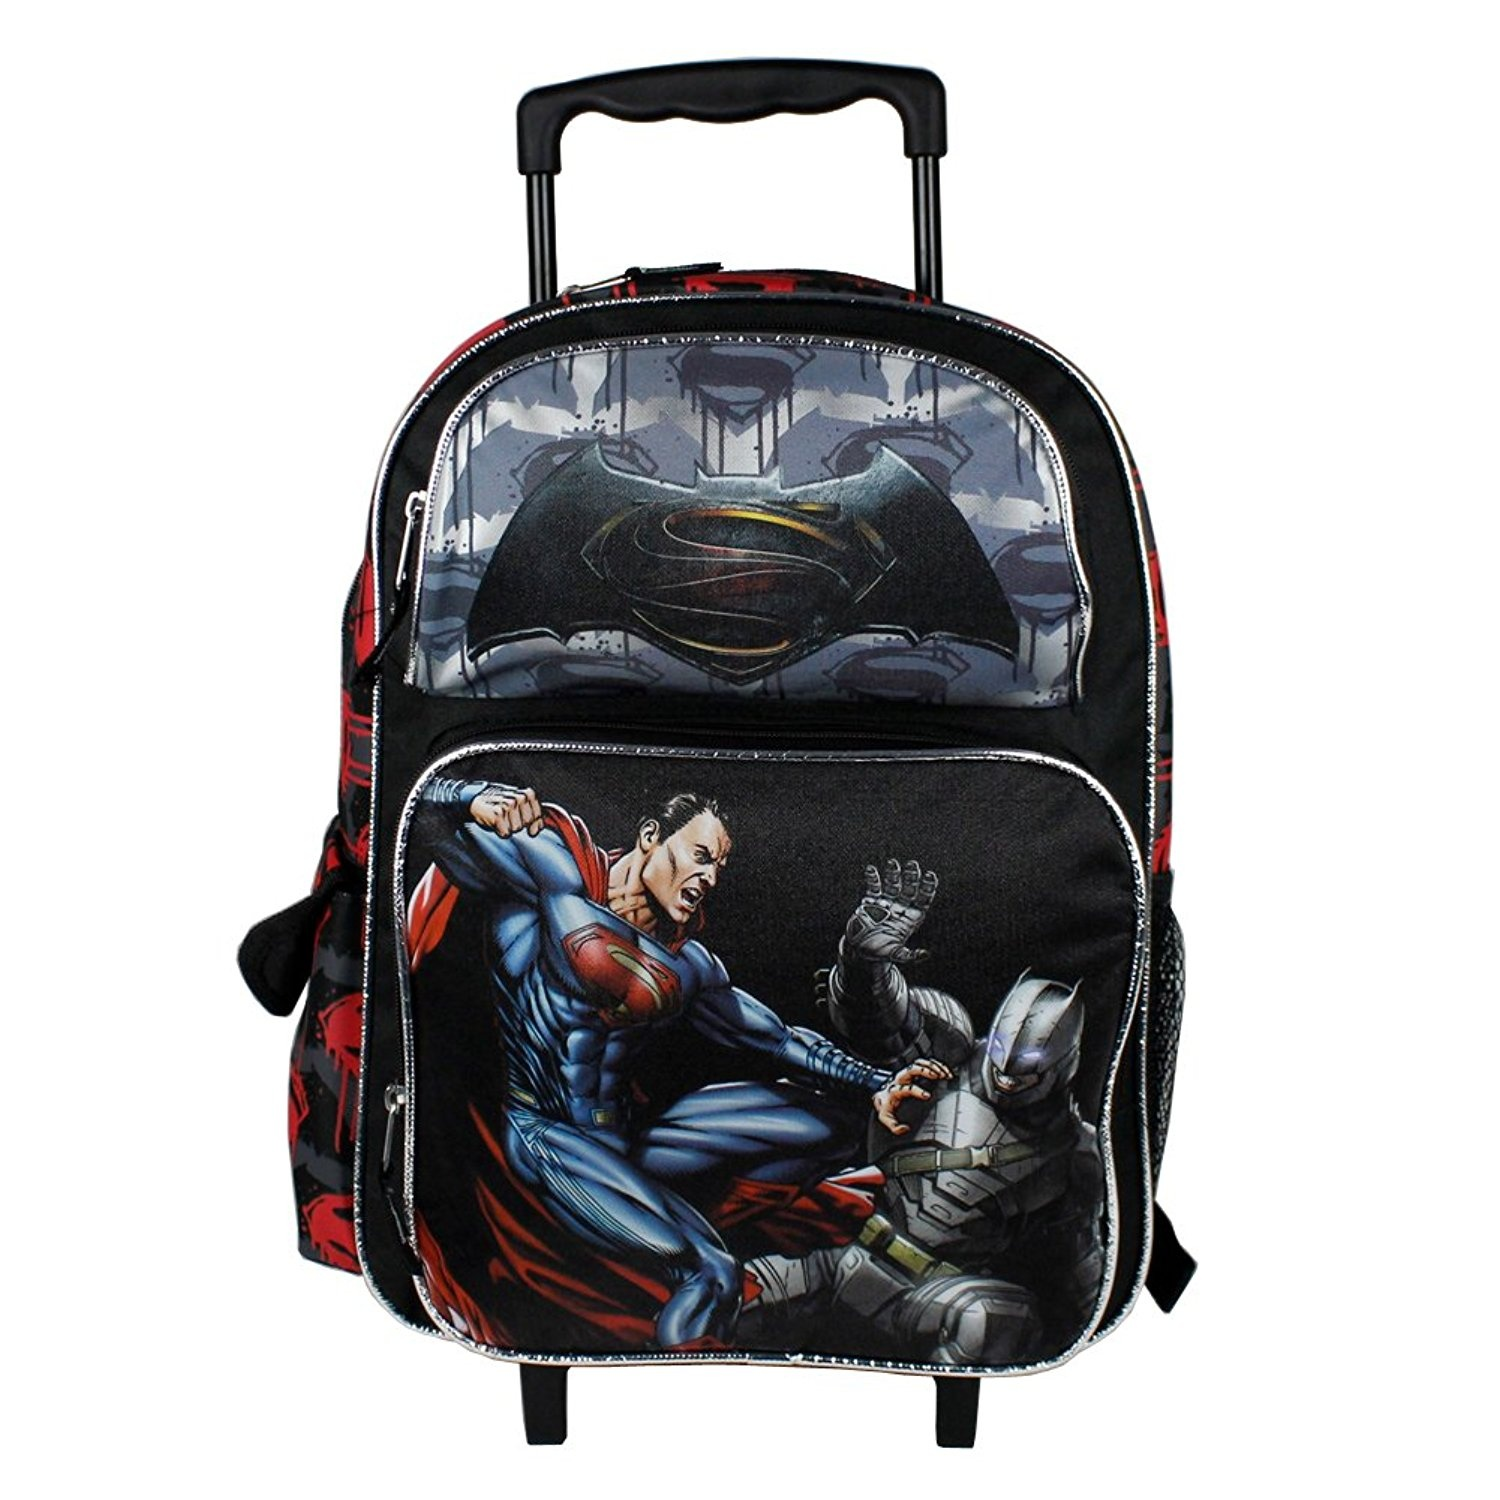 6842421fc01 Superman Backpack Toys: Buy Online from Fishpond.com.au